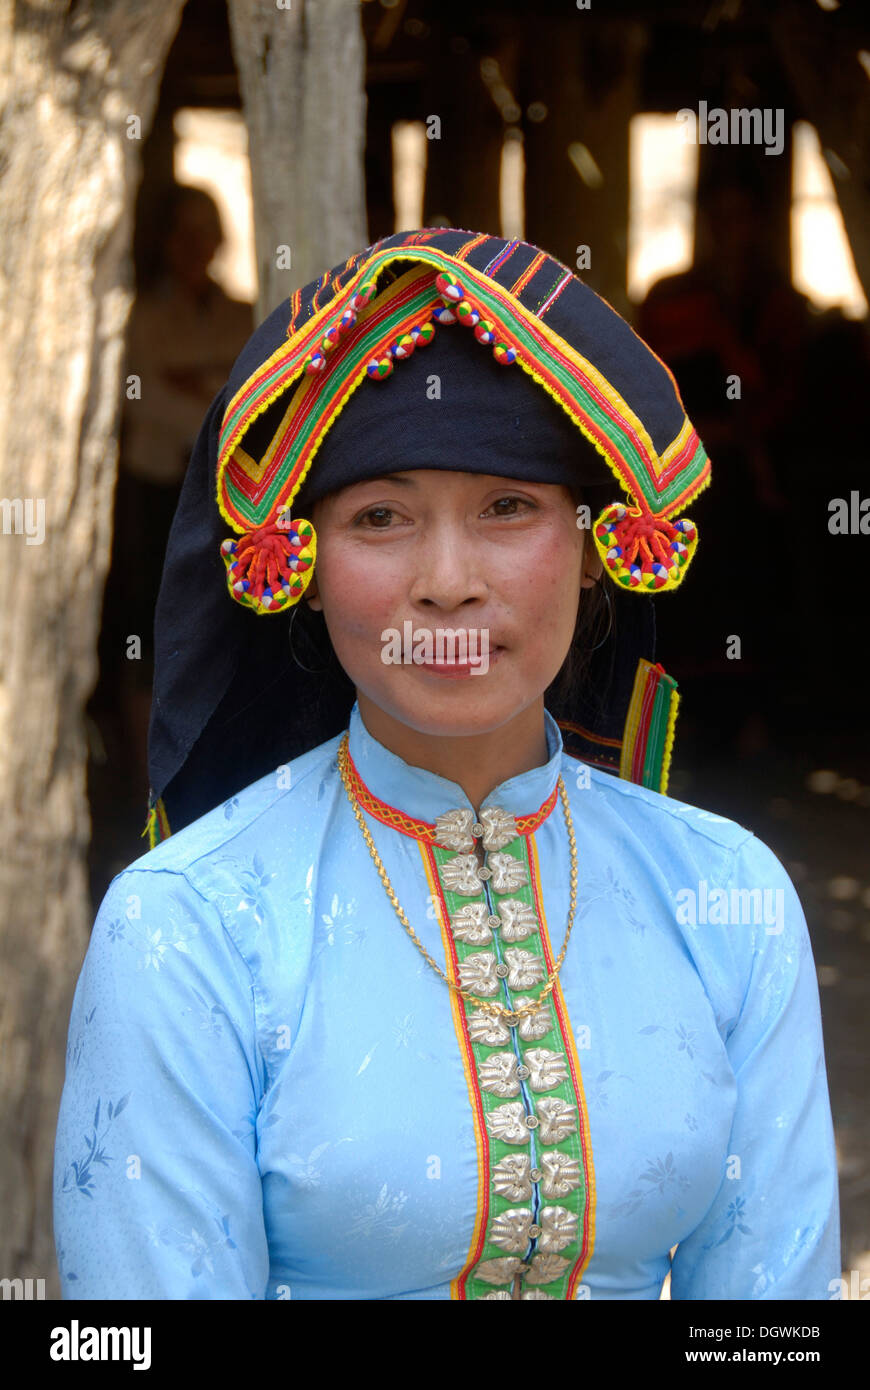 Portrait, woman of the Tai Dam, ethnicity, dress, traditional clothing, colorful embroidered headdress - Stock Image